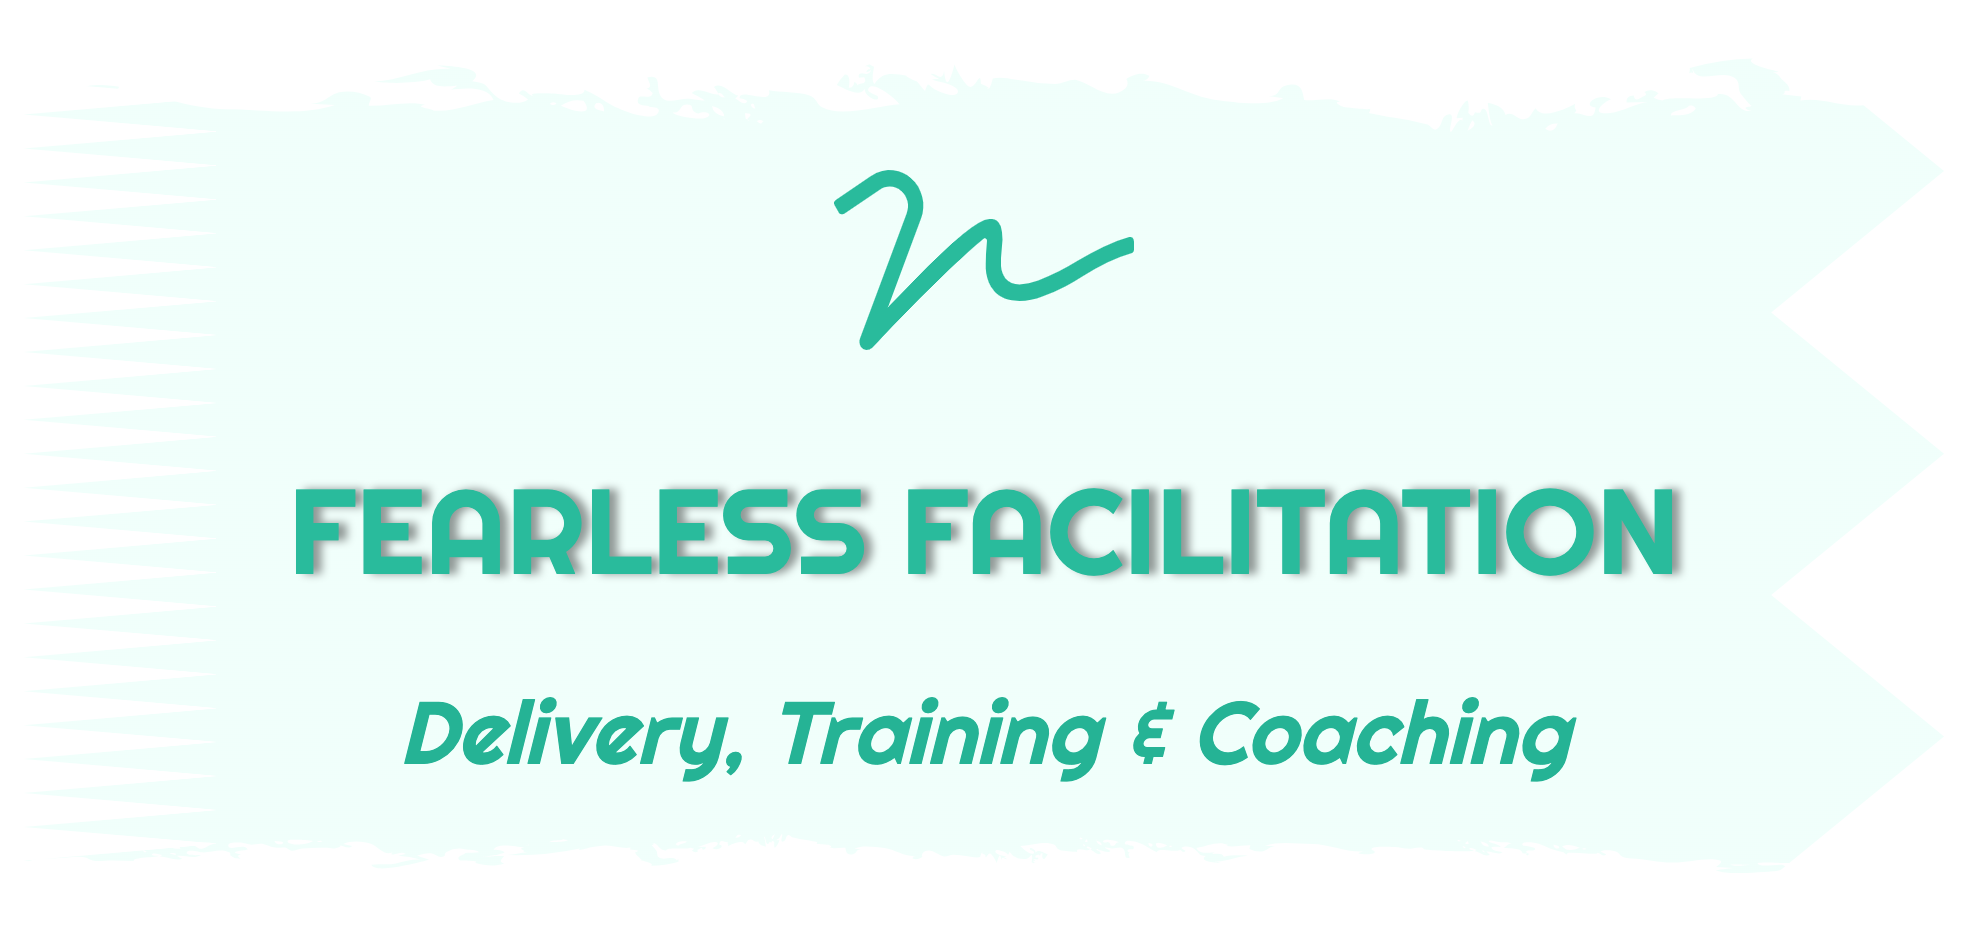 facilitation services in Cambodia